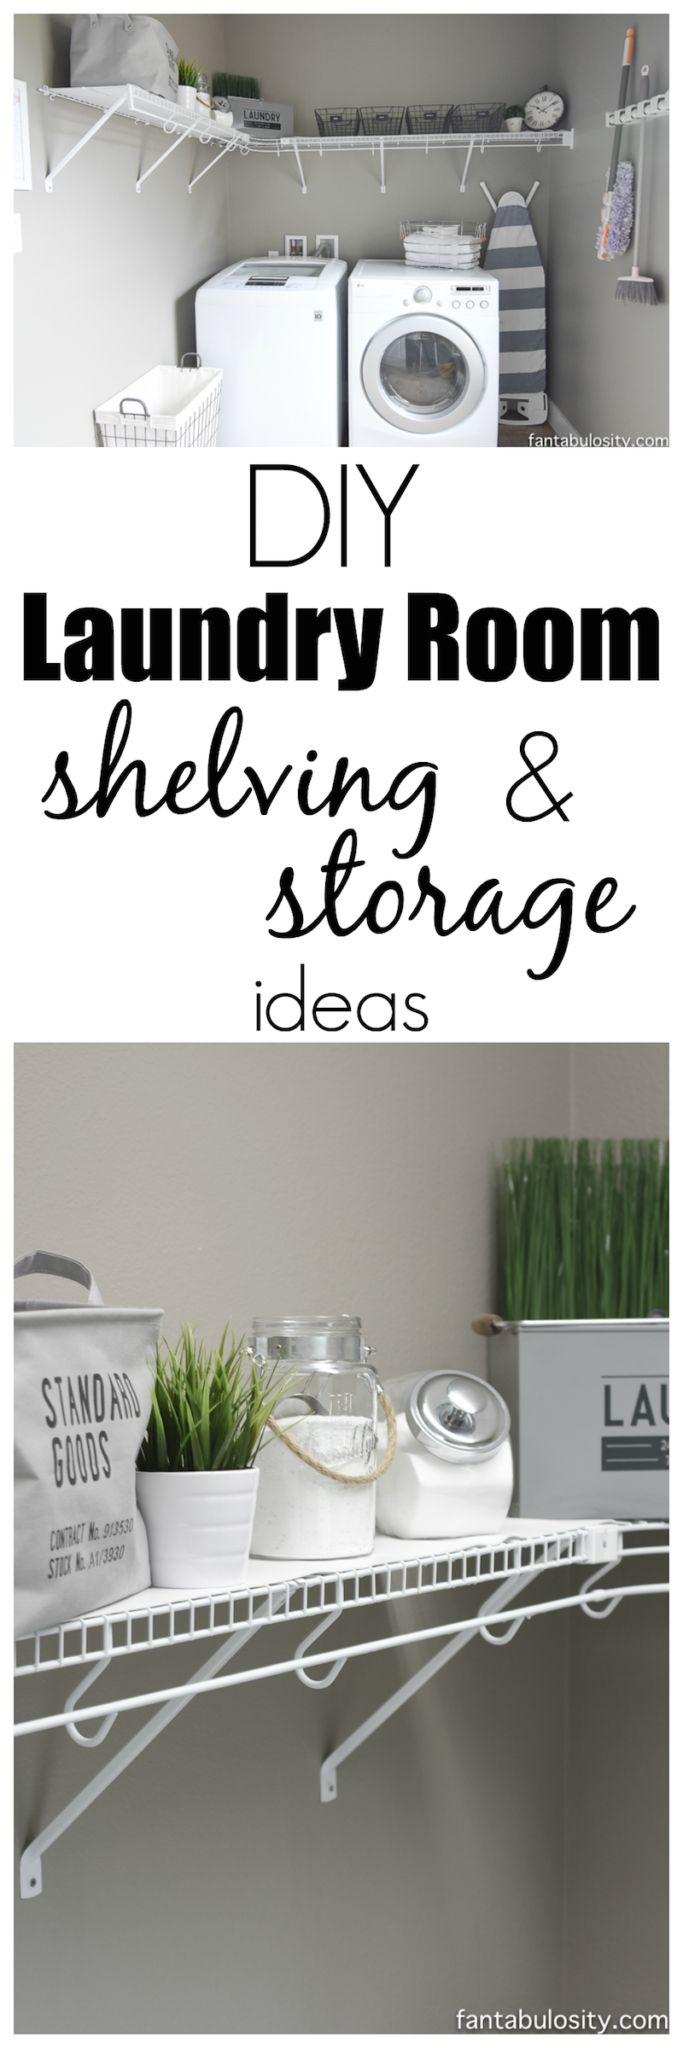 DIY Laundry room shelving and storage ideas, plus the links of where to buy most of this!